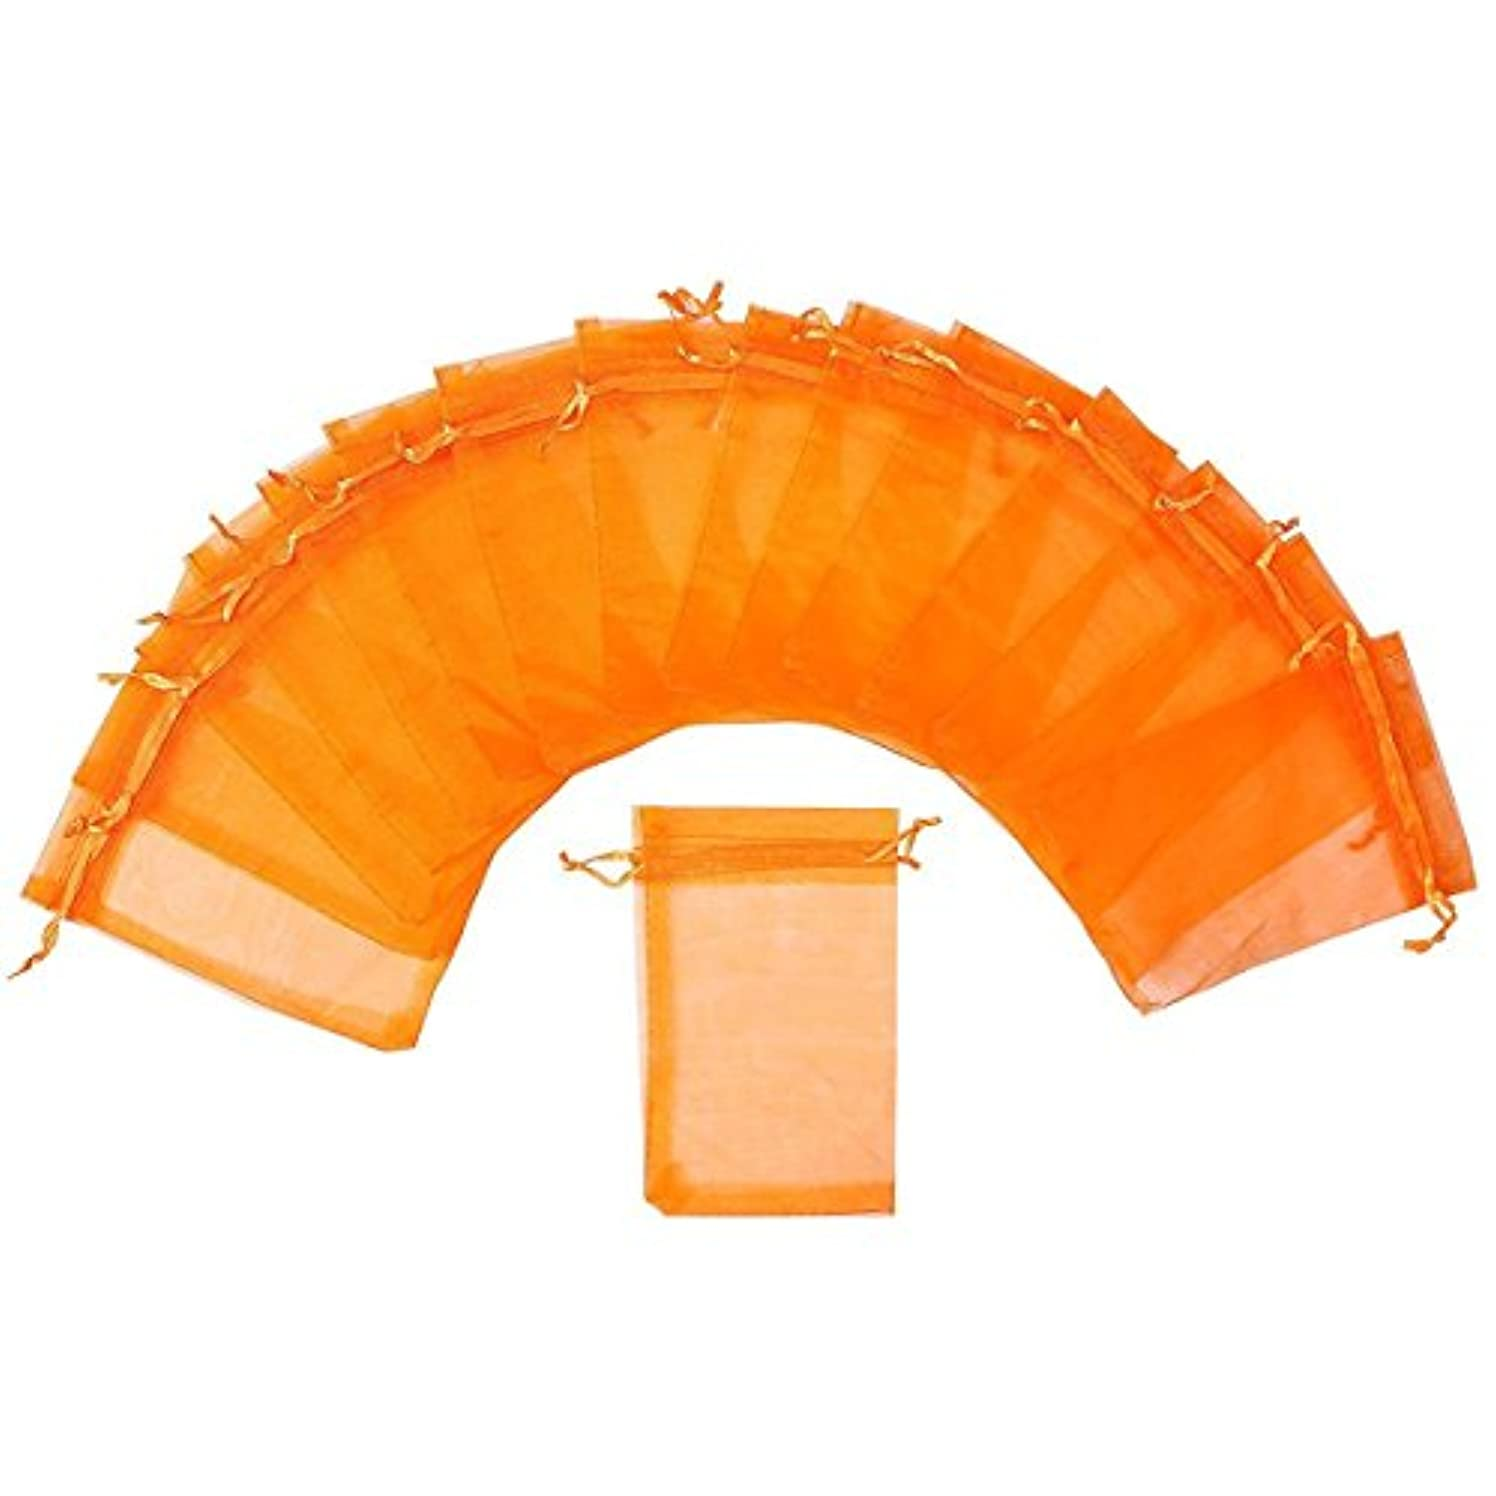 Tvoip Drawstring Organza Jewelry Pouches Wedding Party Festival Gift/Candy Bags (Pack of 100) (Orange)